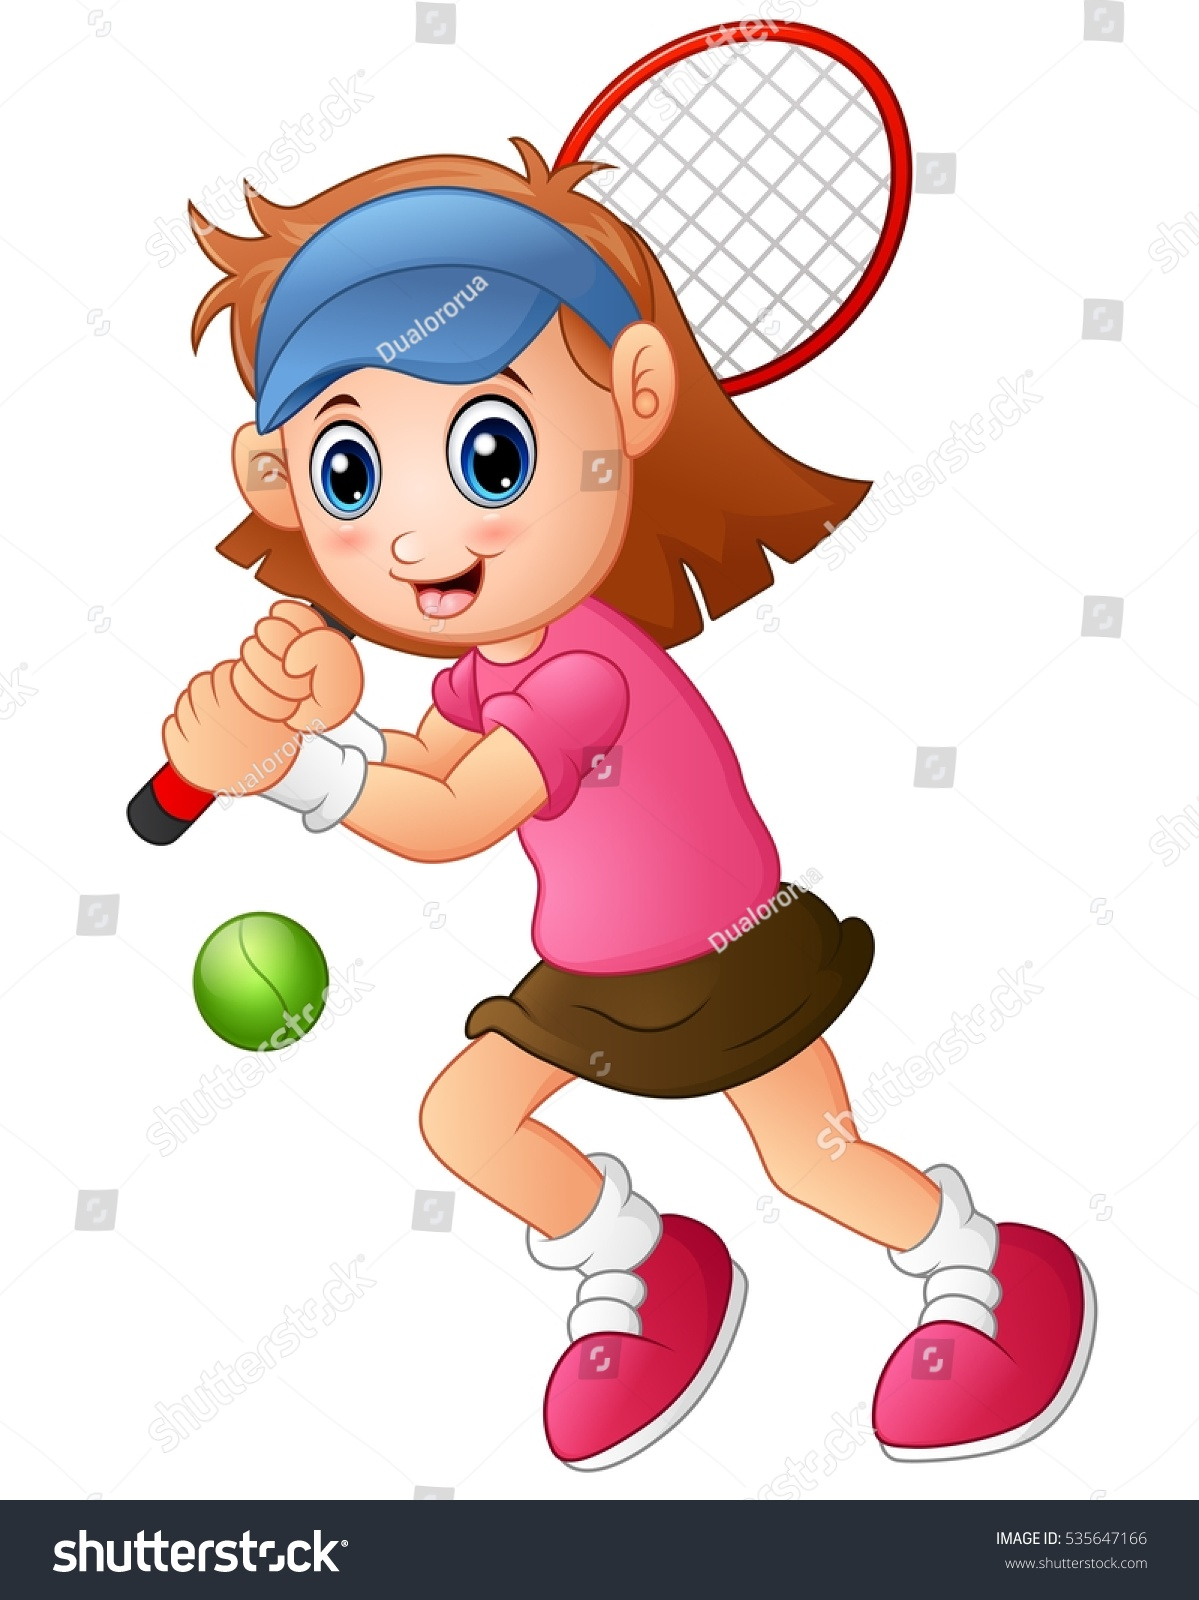 online image   photo editor shutterstock editor tennis clipart black and white tennis clipart images free black and white